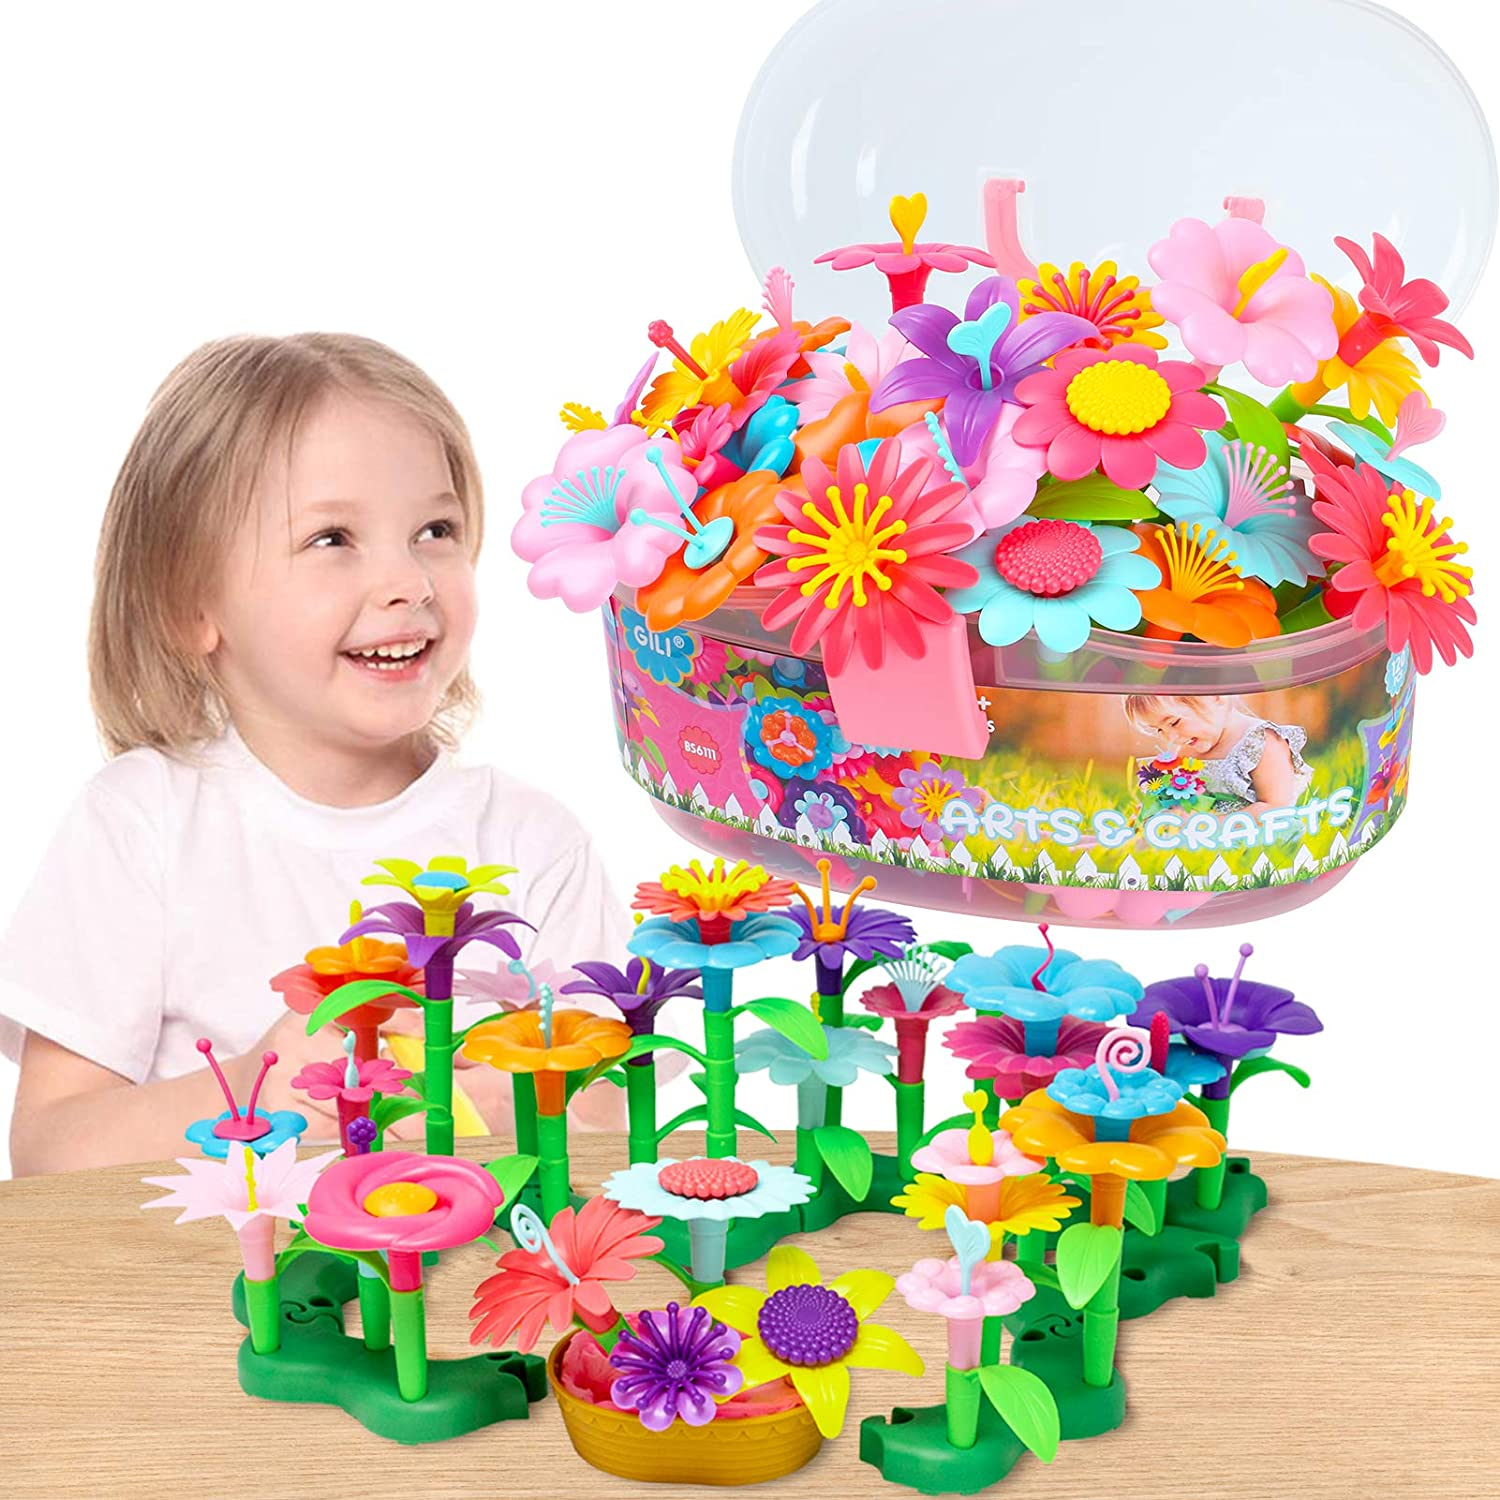 JIPOWER Toys for 3-12 Year Old Girls Flower Garden Building Toys for 3-5 Year Old Girls Birthday Gifts Age 6-8 Learning Educational Toys for Kids Preschool Activities for 3-4 Year Olds Gifts